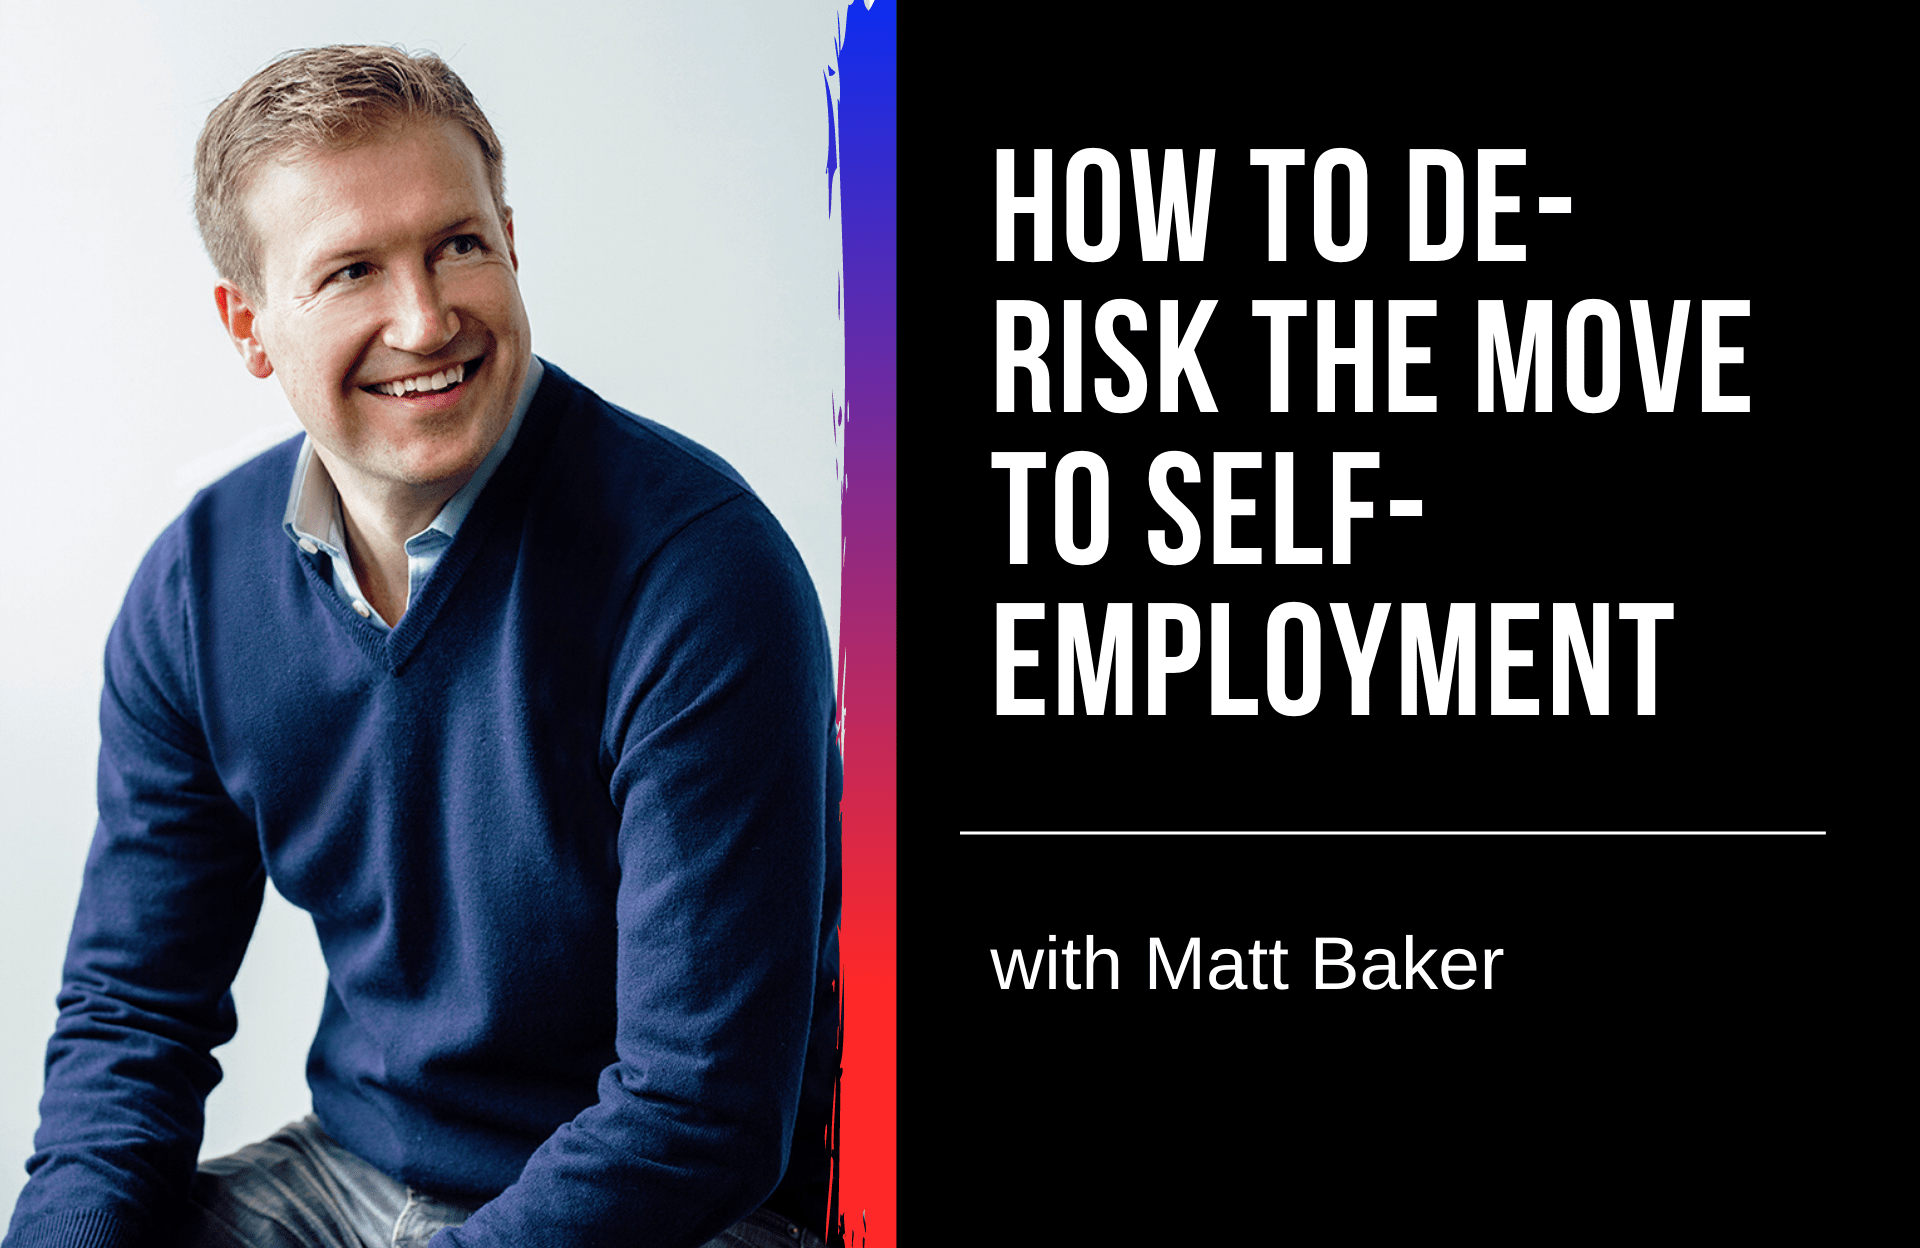 How to De-Risk the Move to Self-Employment with Matt Baker